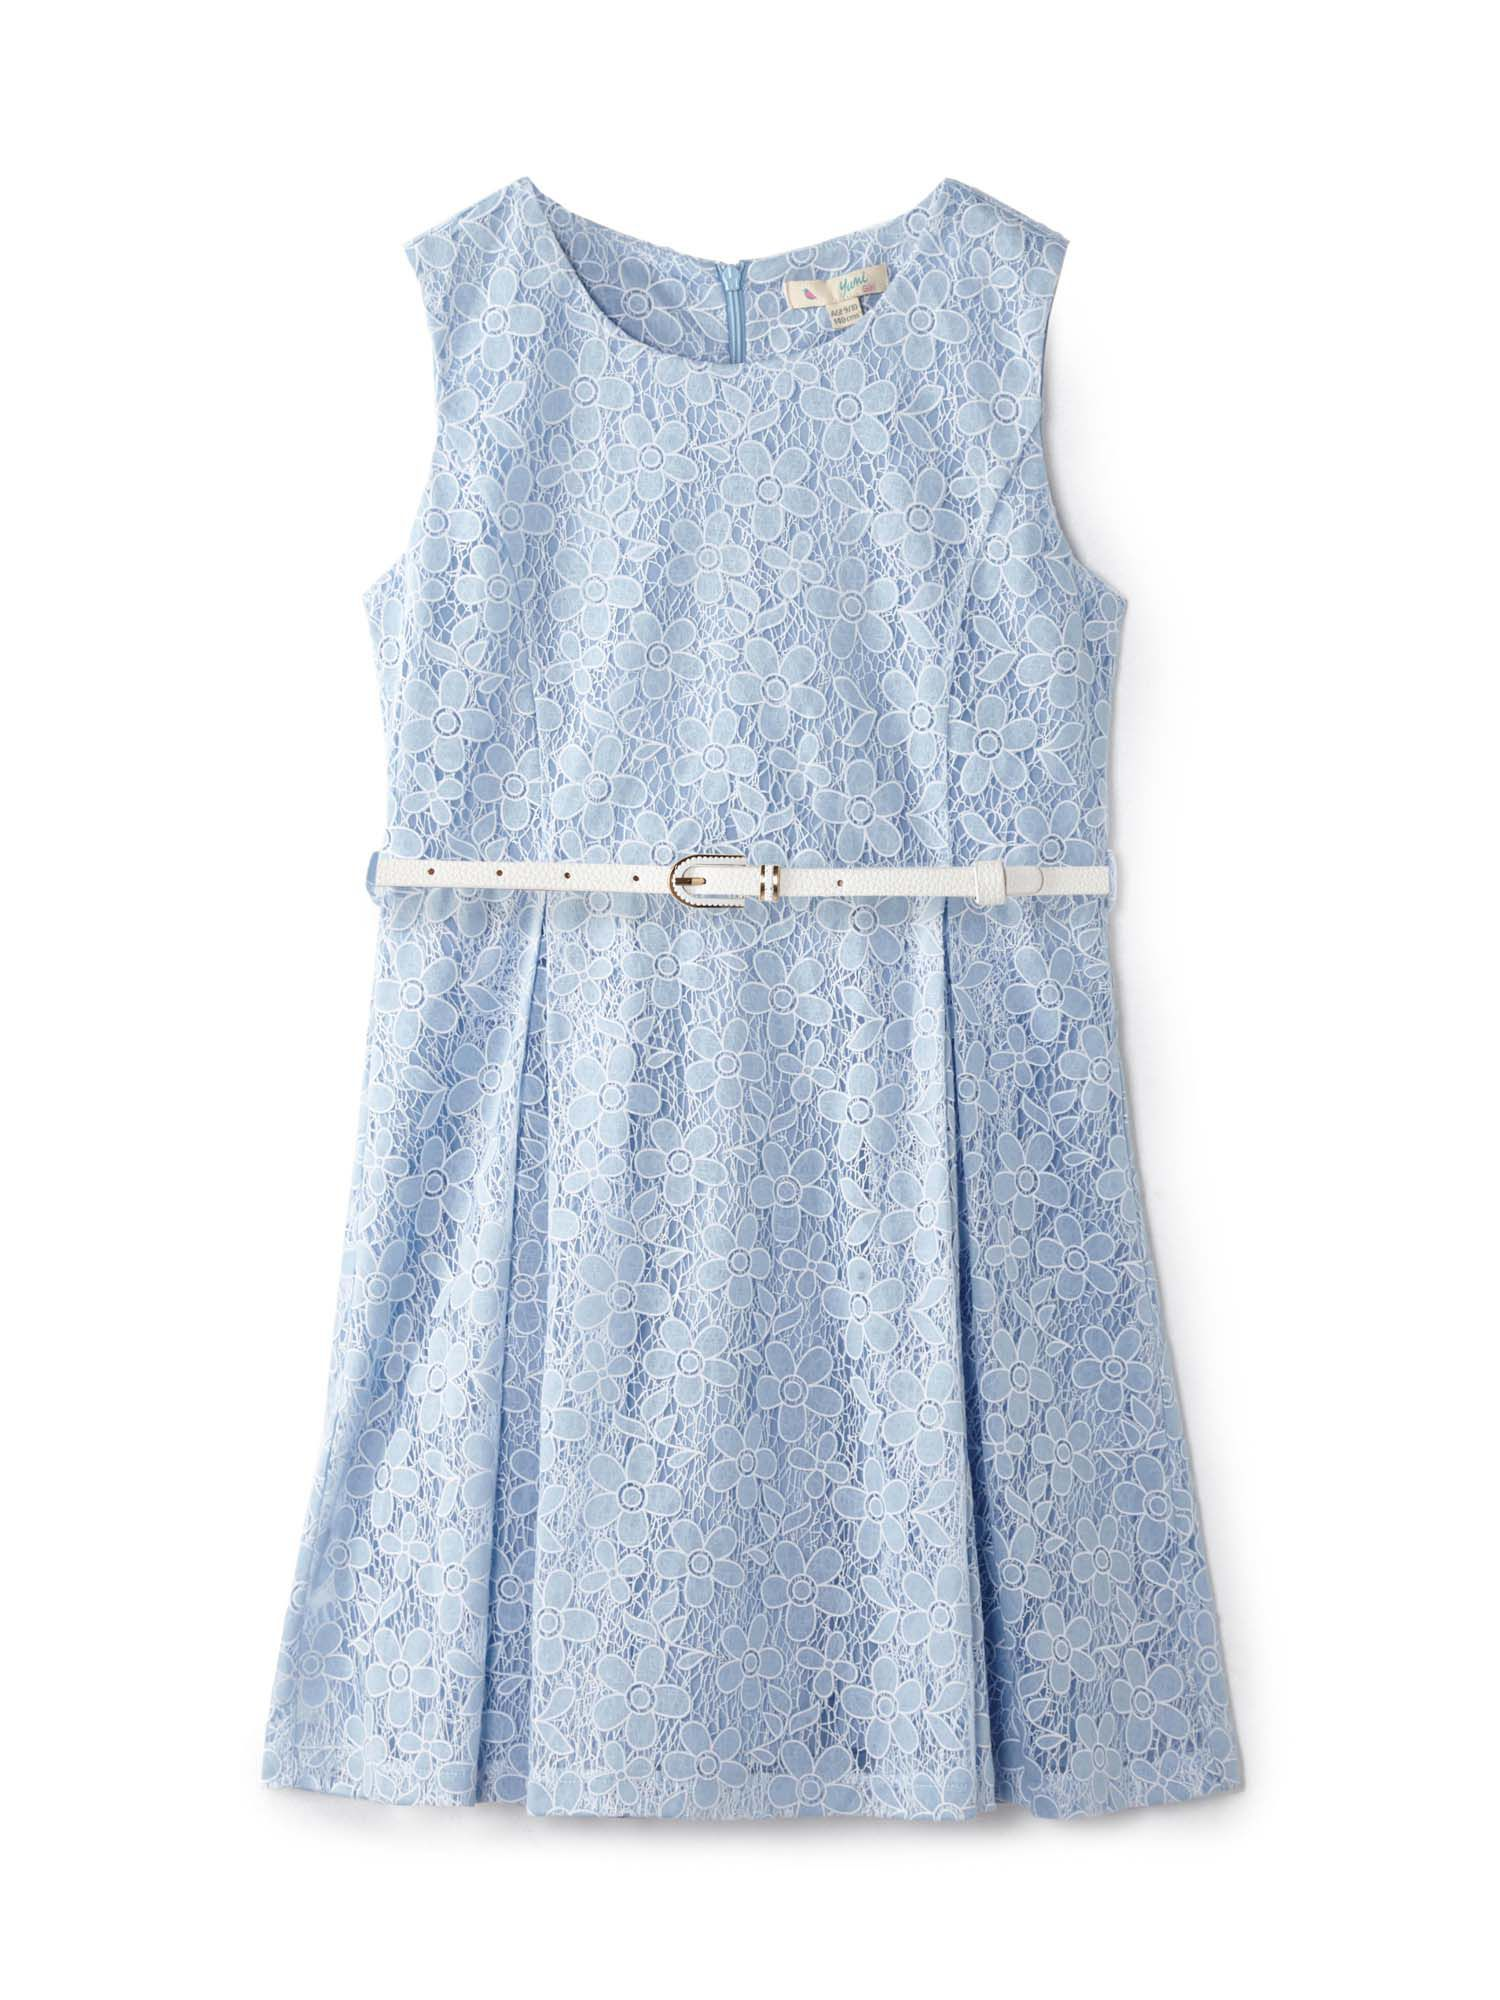 Click to view product details and reviews for Yumi Girls Daisy Lace Party Dress Light Blue.